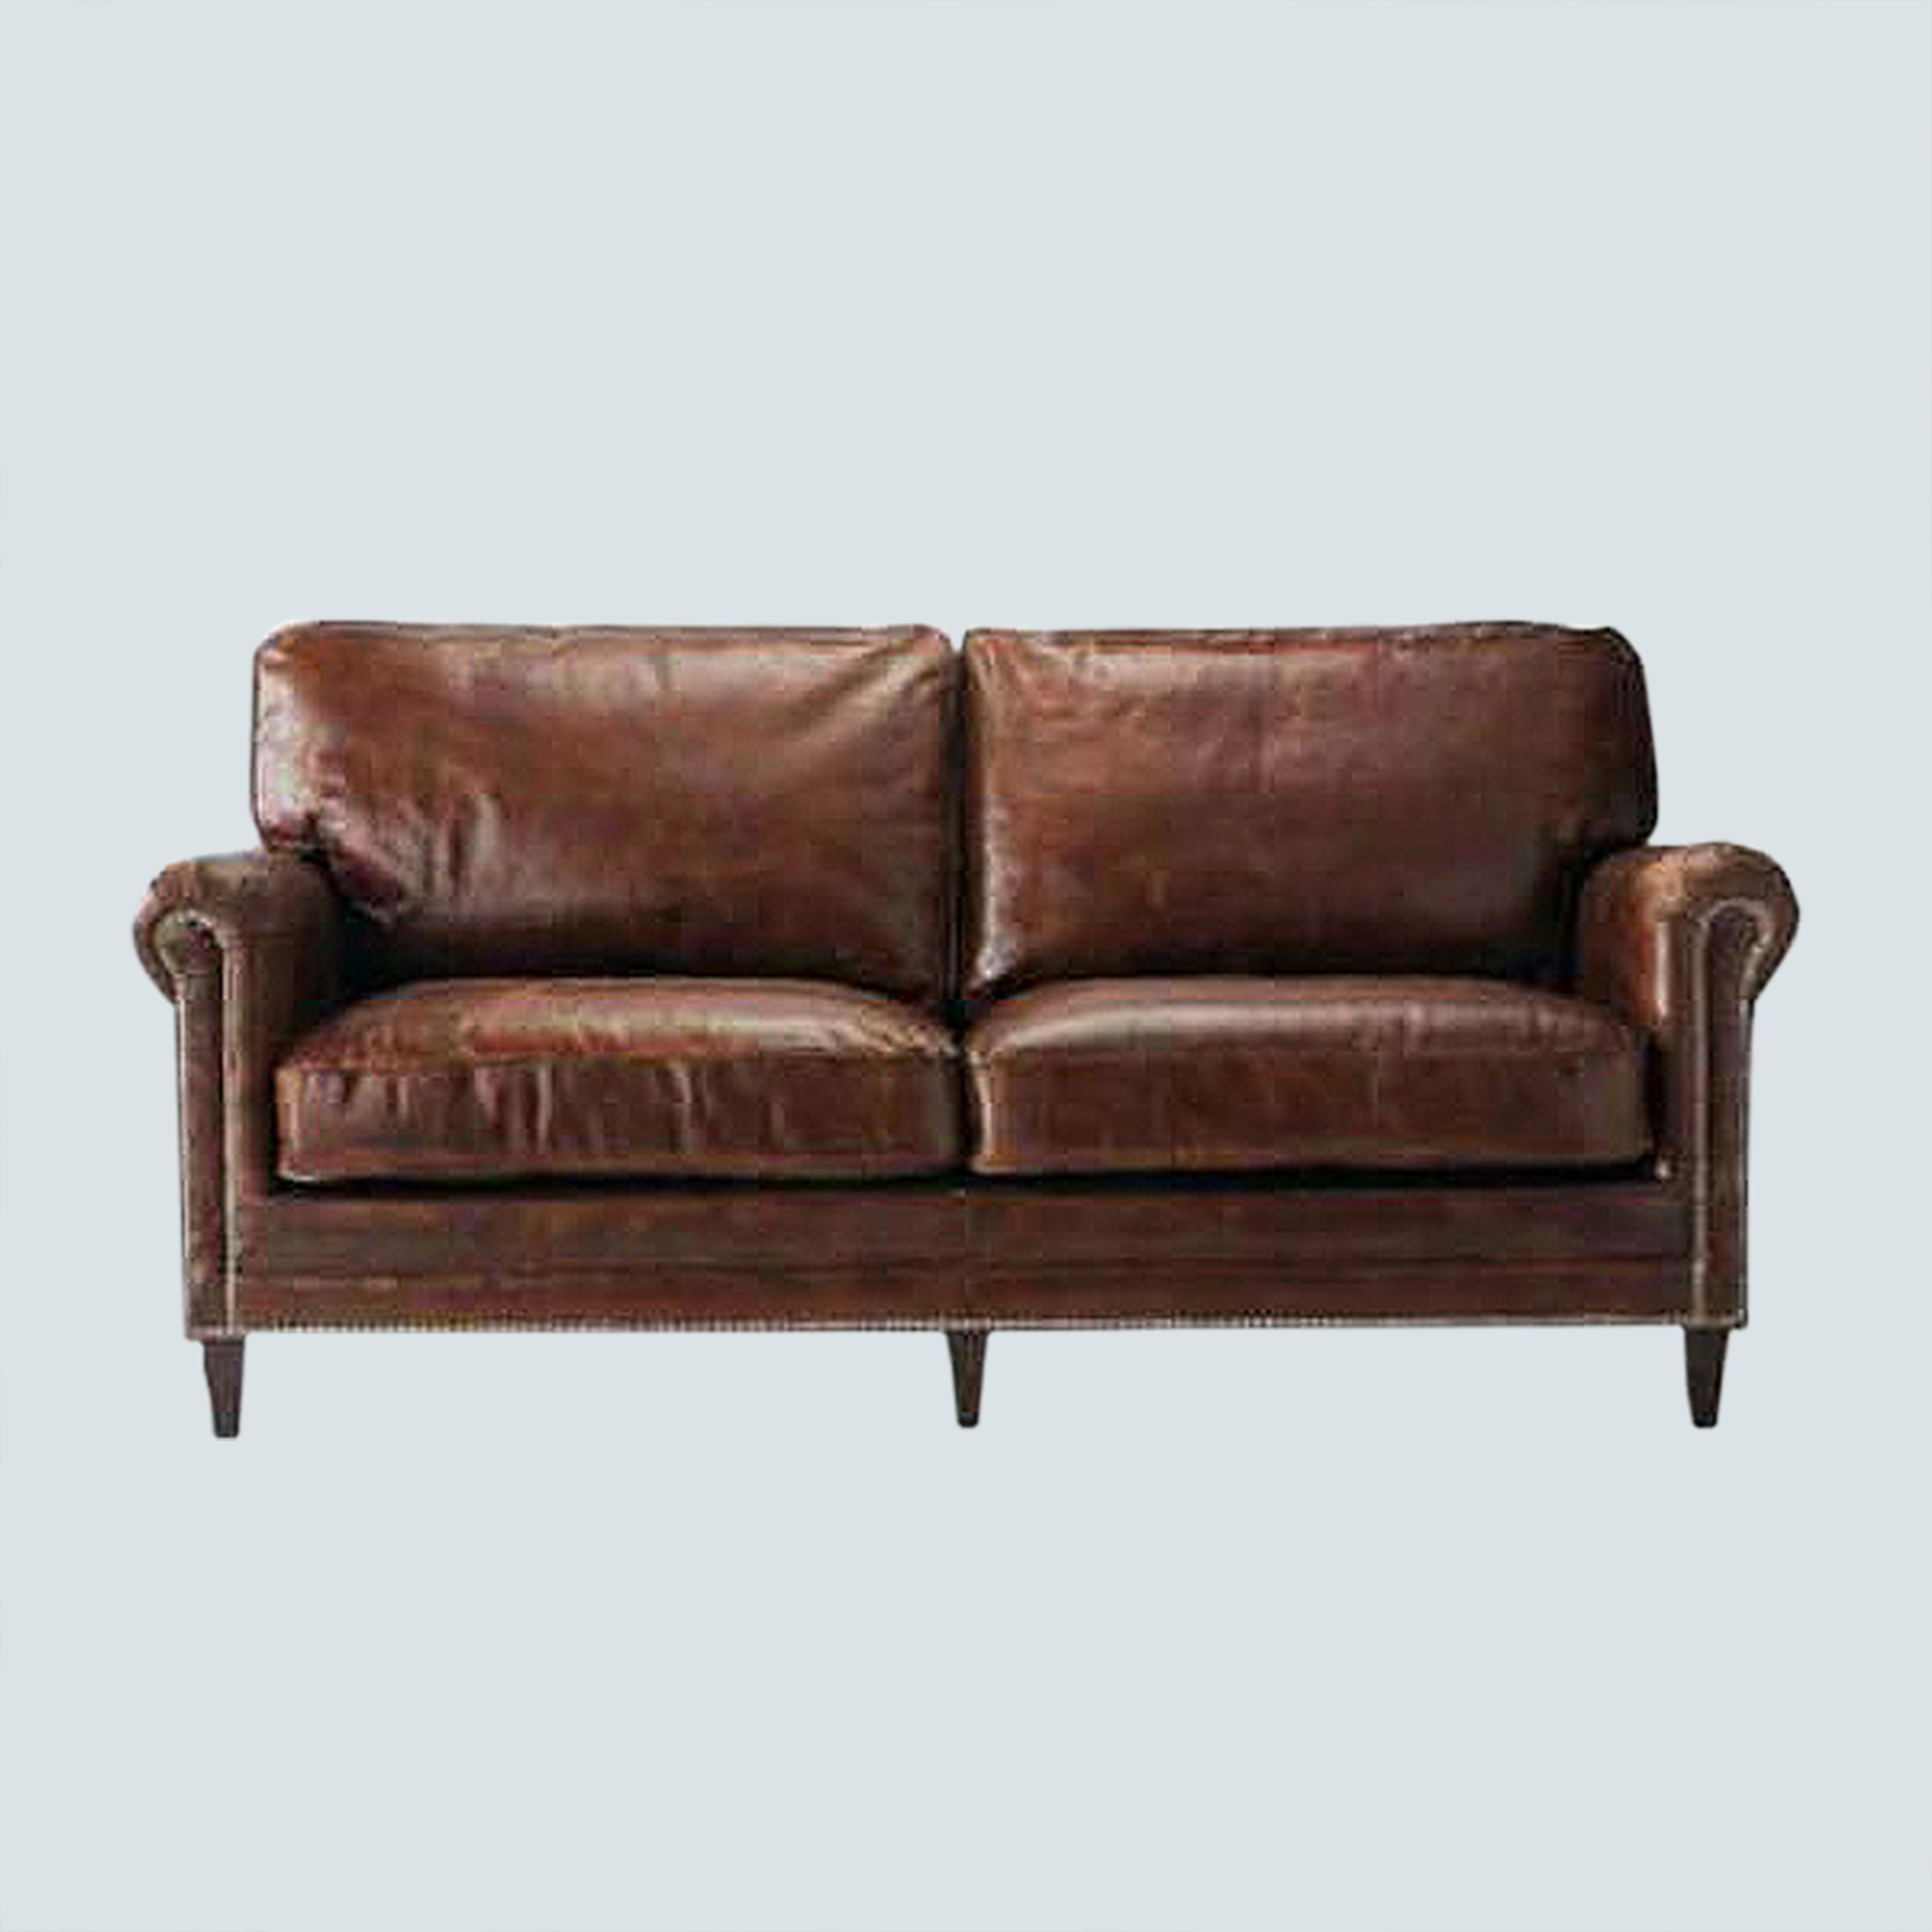 Leather Accent Couch Sofa , upholstered club lounge sofa, Vintage Loveseat